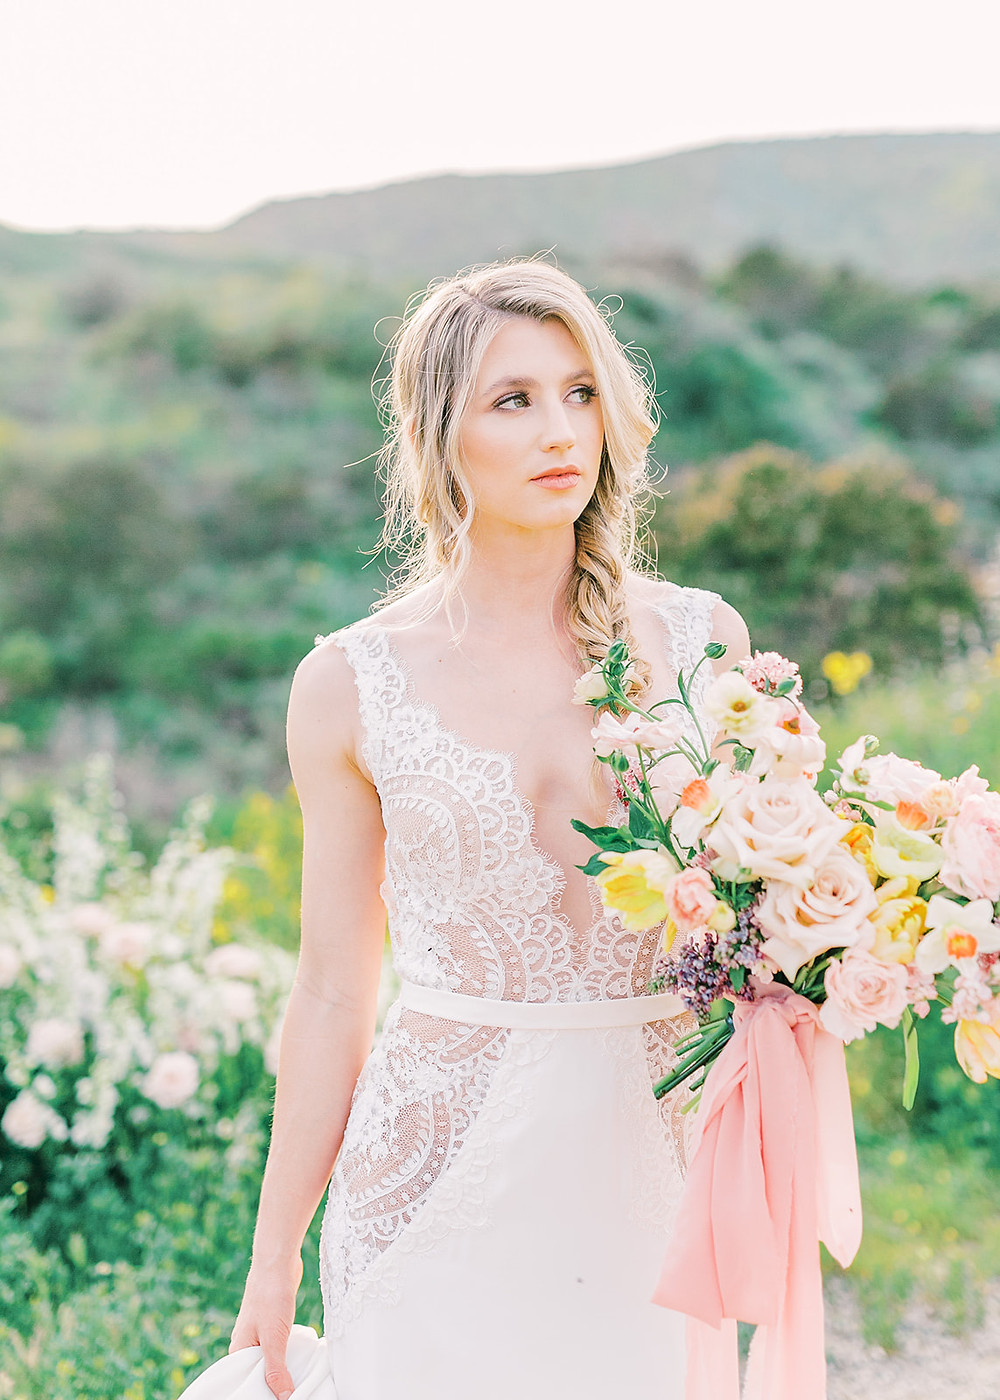 Beautiful dress from bridal boutique Bridal Showcase in north county San Diego. Bride holding lush and vibrant Spring bouquet filled with daffodils, lilac, tulips, butterfly ranunculus, etc, made by San Diego Wedding Florist, Le Champagne Projects